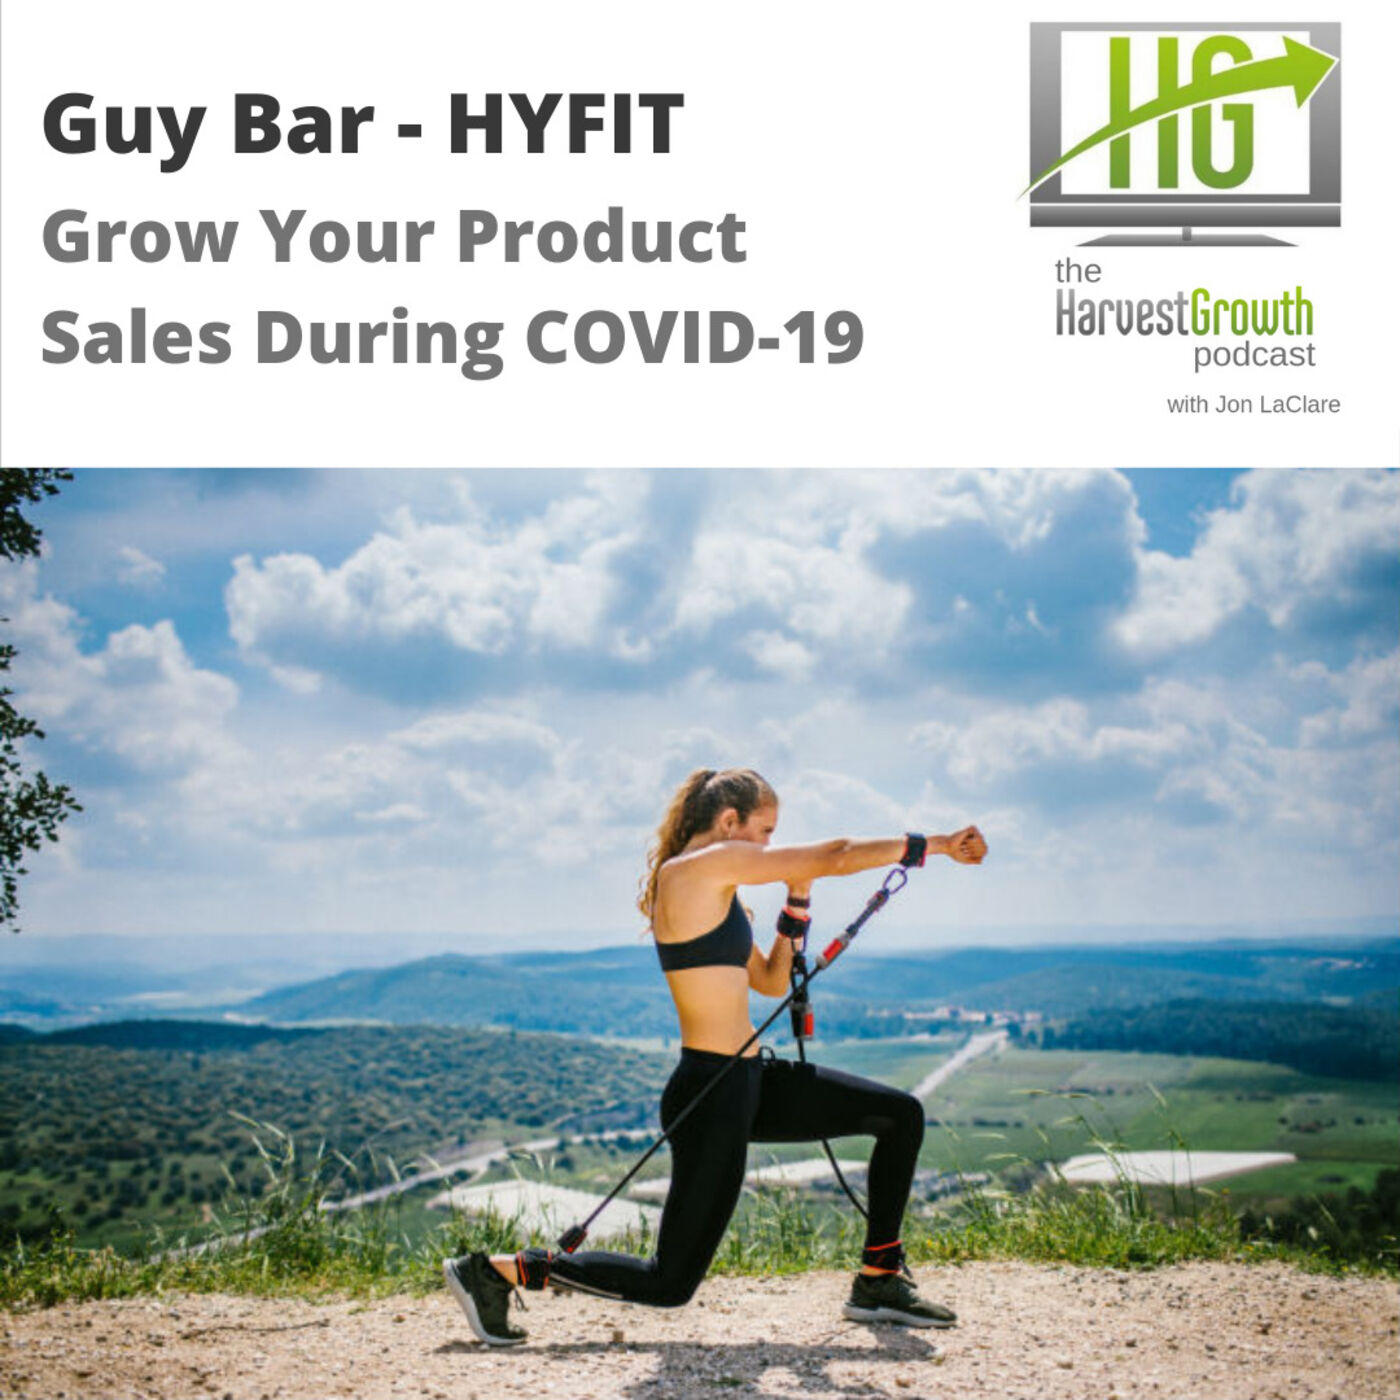 Grow Your Product Sales During COVID-19 - HYFIT